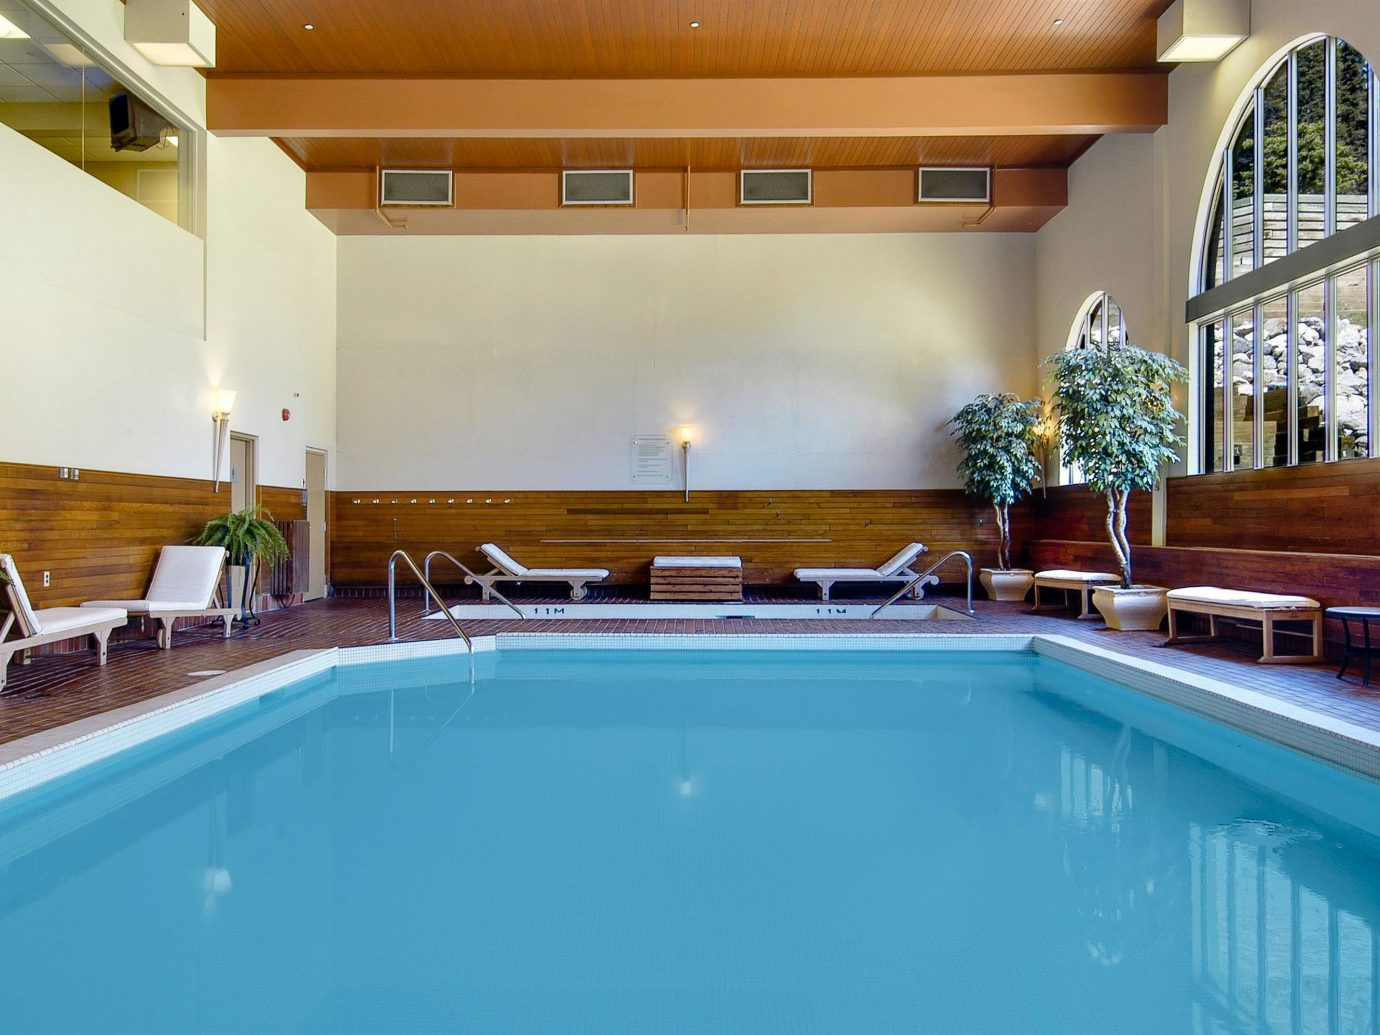 Alberta Boutique Hotels Canada Hotels swimming pool leisure real estate estate interior design amenity Resort hotel leisure centre Pool